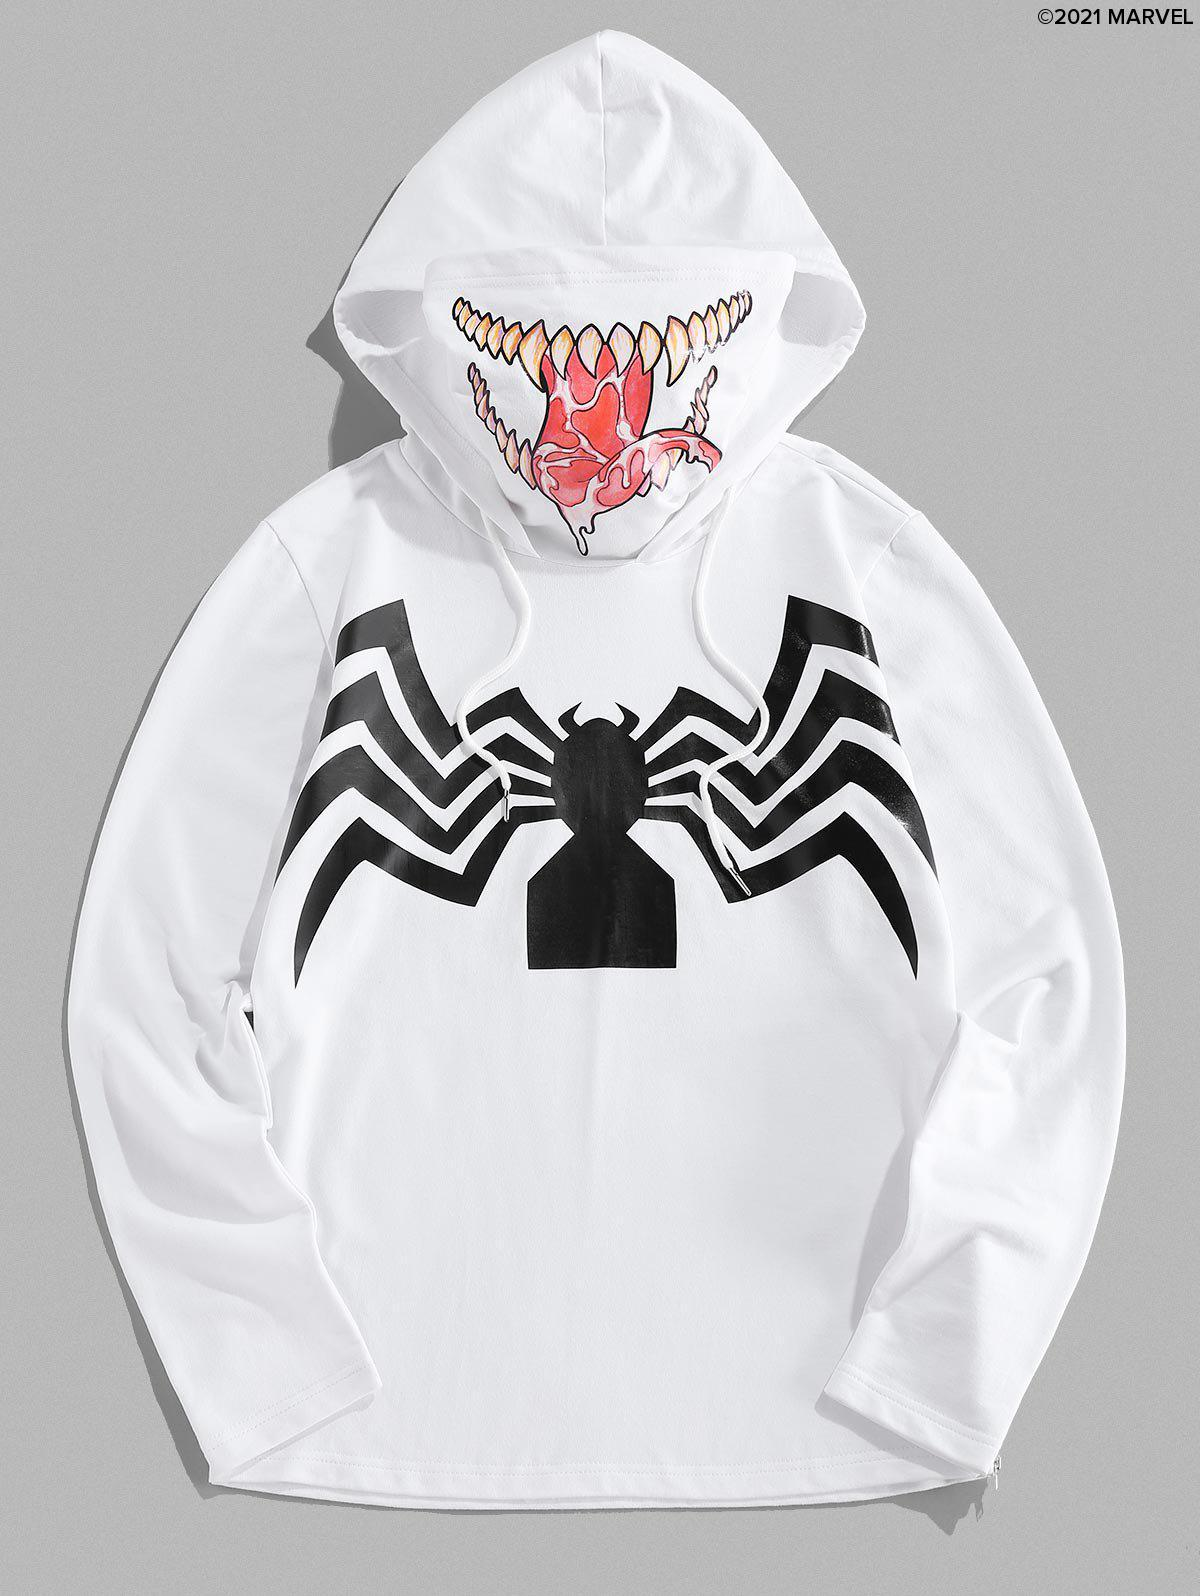 Affordable Marvel Spider-Man Venom Print Double Collar Mask Hoodie